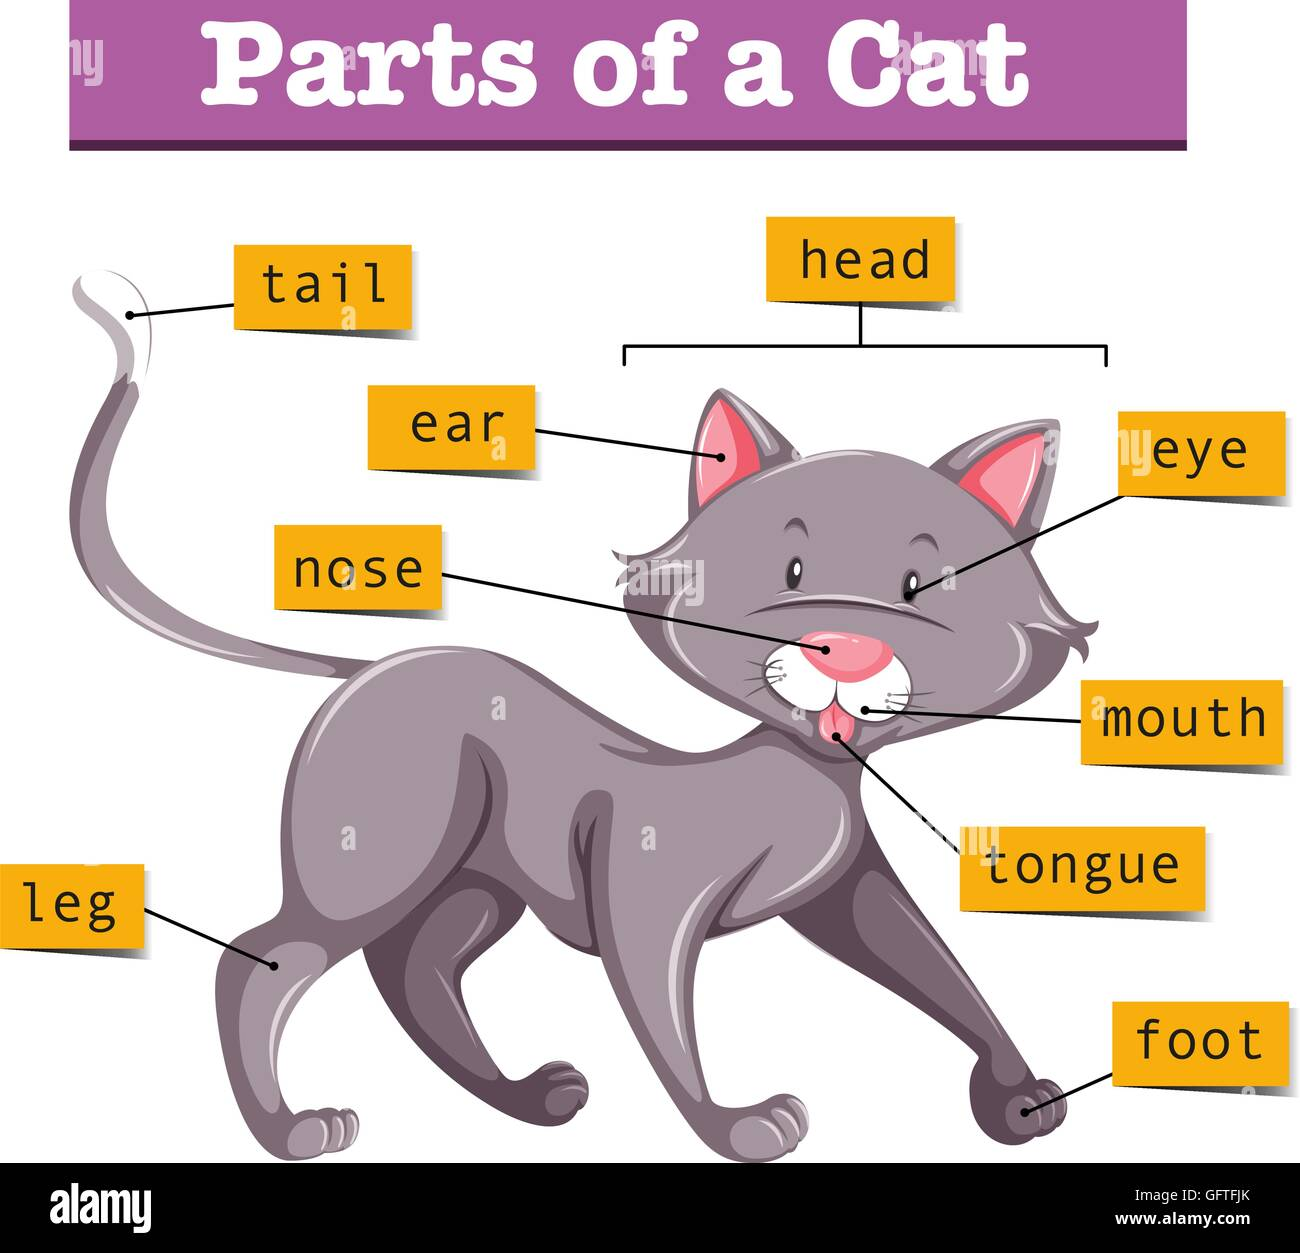 Parts Of A Cats Ear Diagram - Search For Wiring Diagrams •